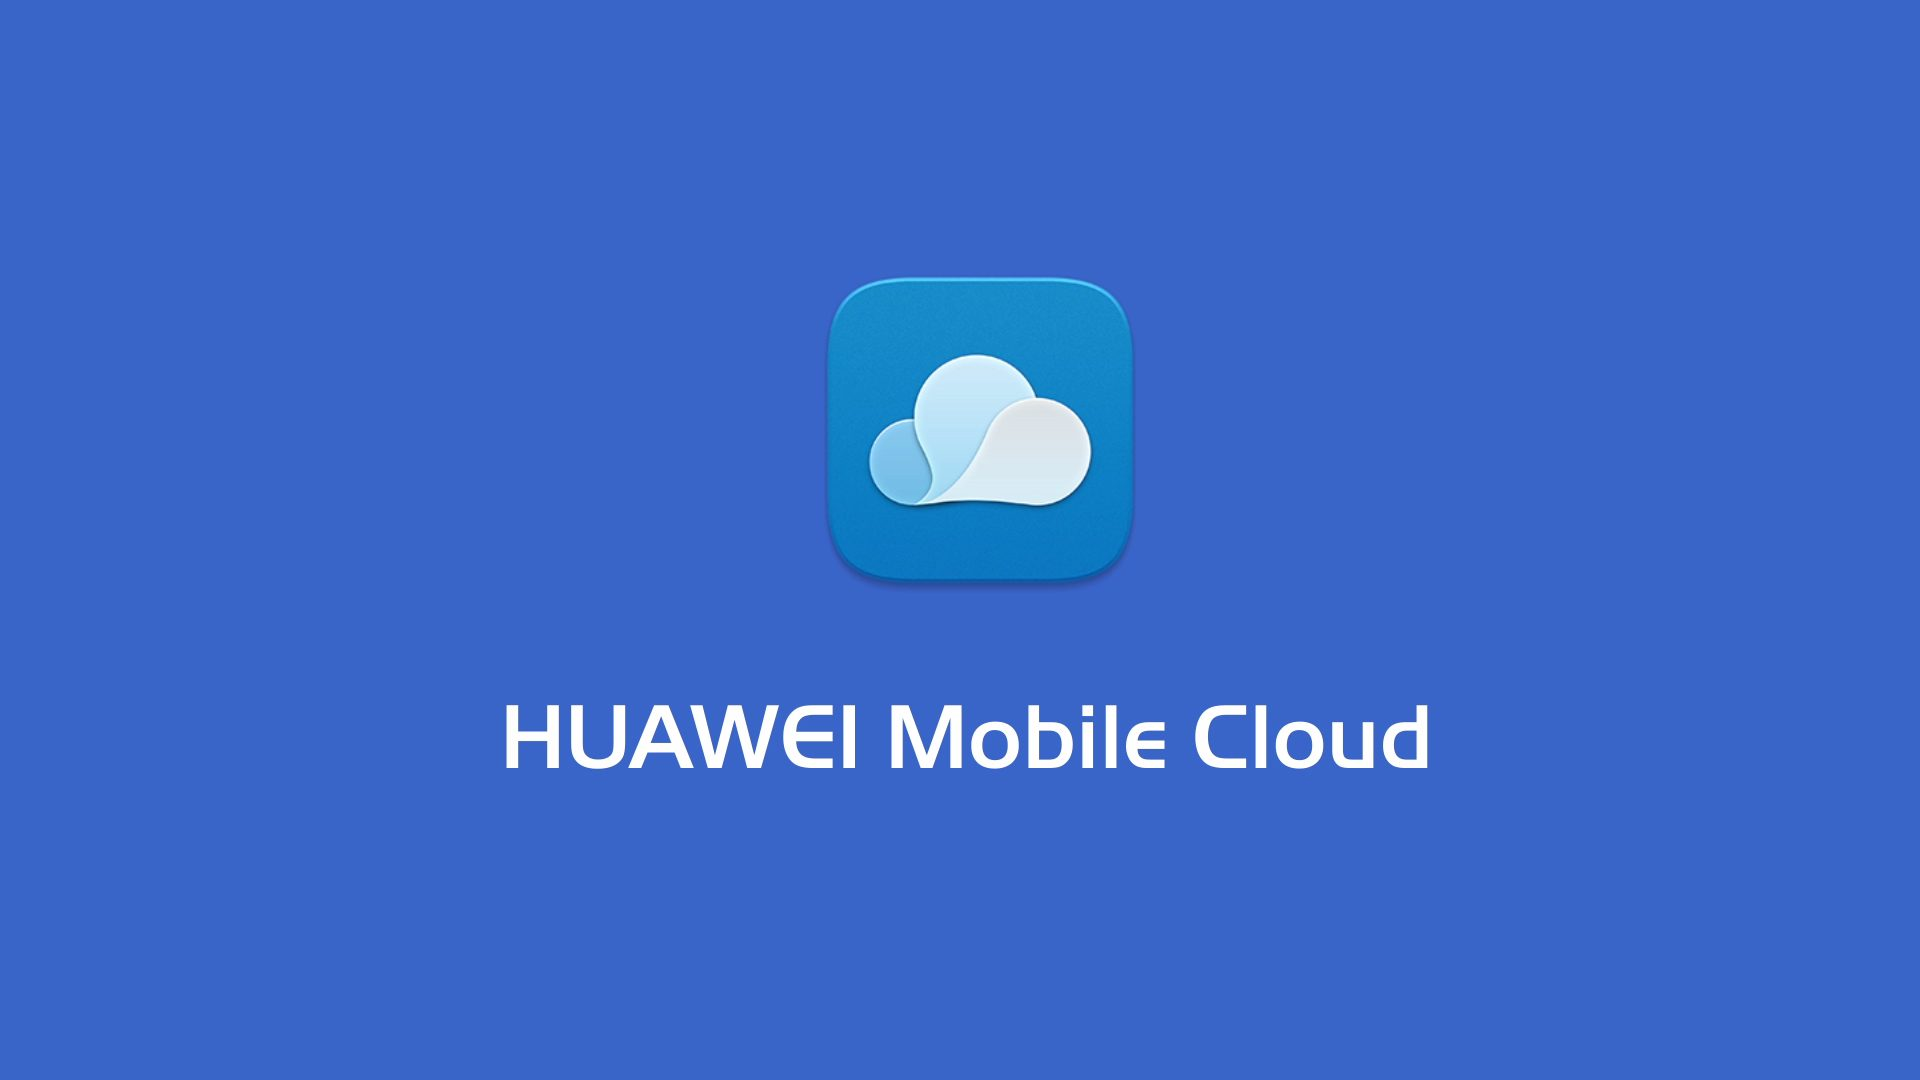 Huawei Mobile Cloud logo